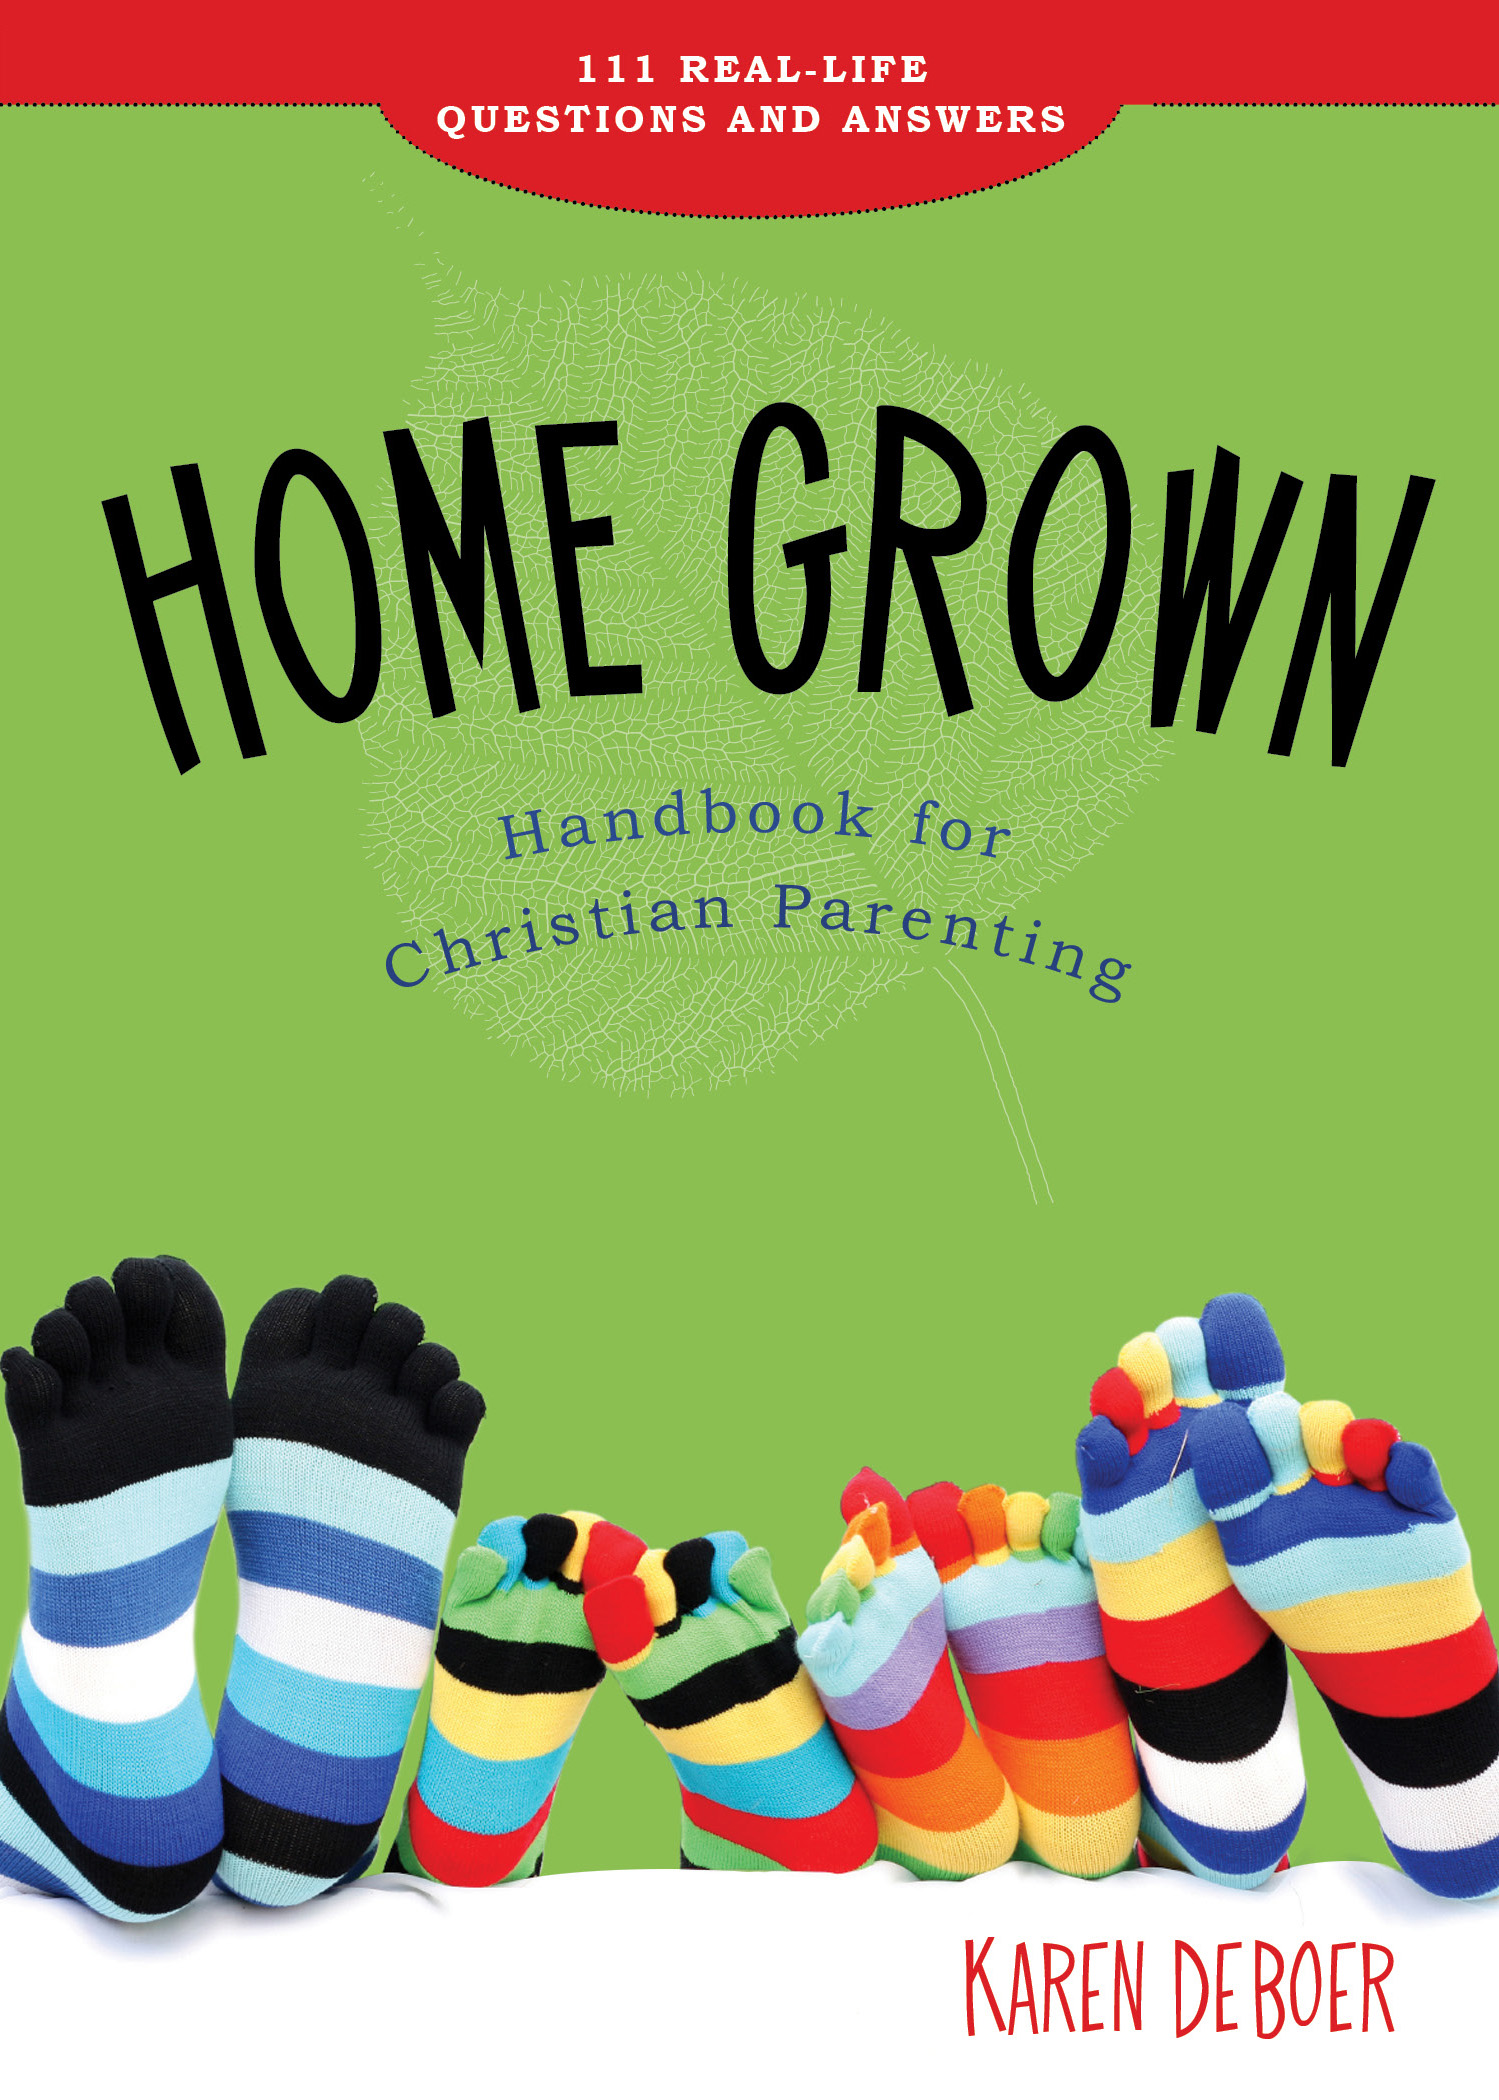 Home Grown Handbook for Christian Parenting (eBook, ePub)